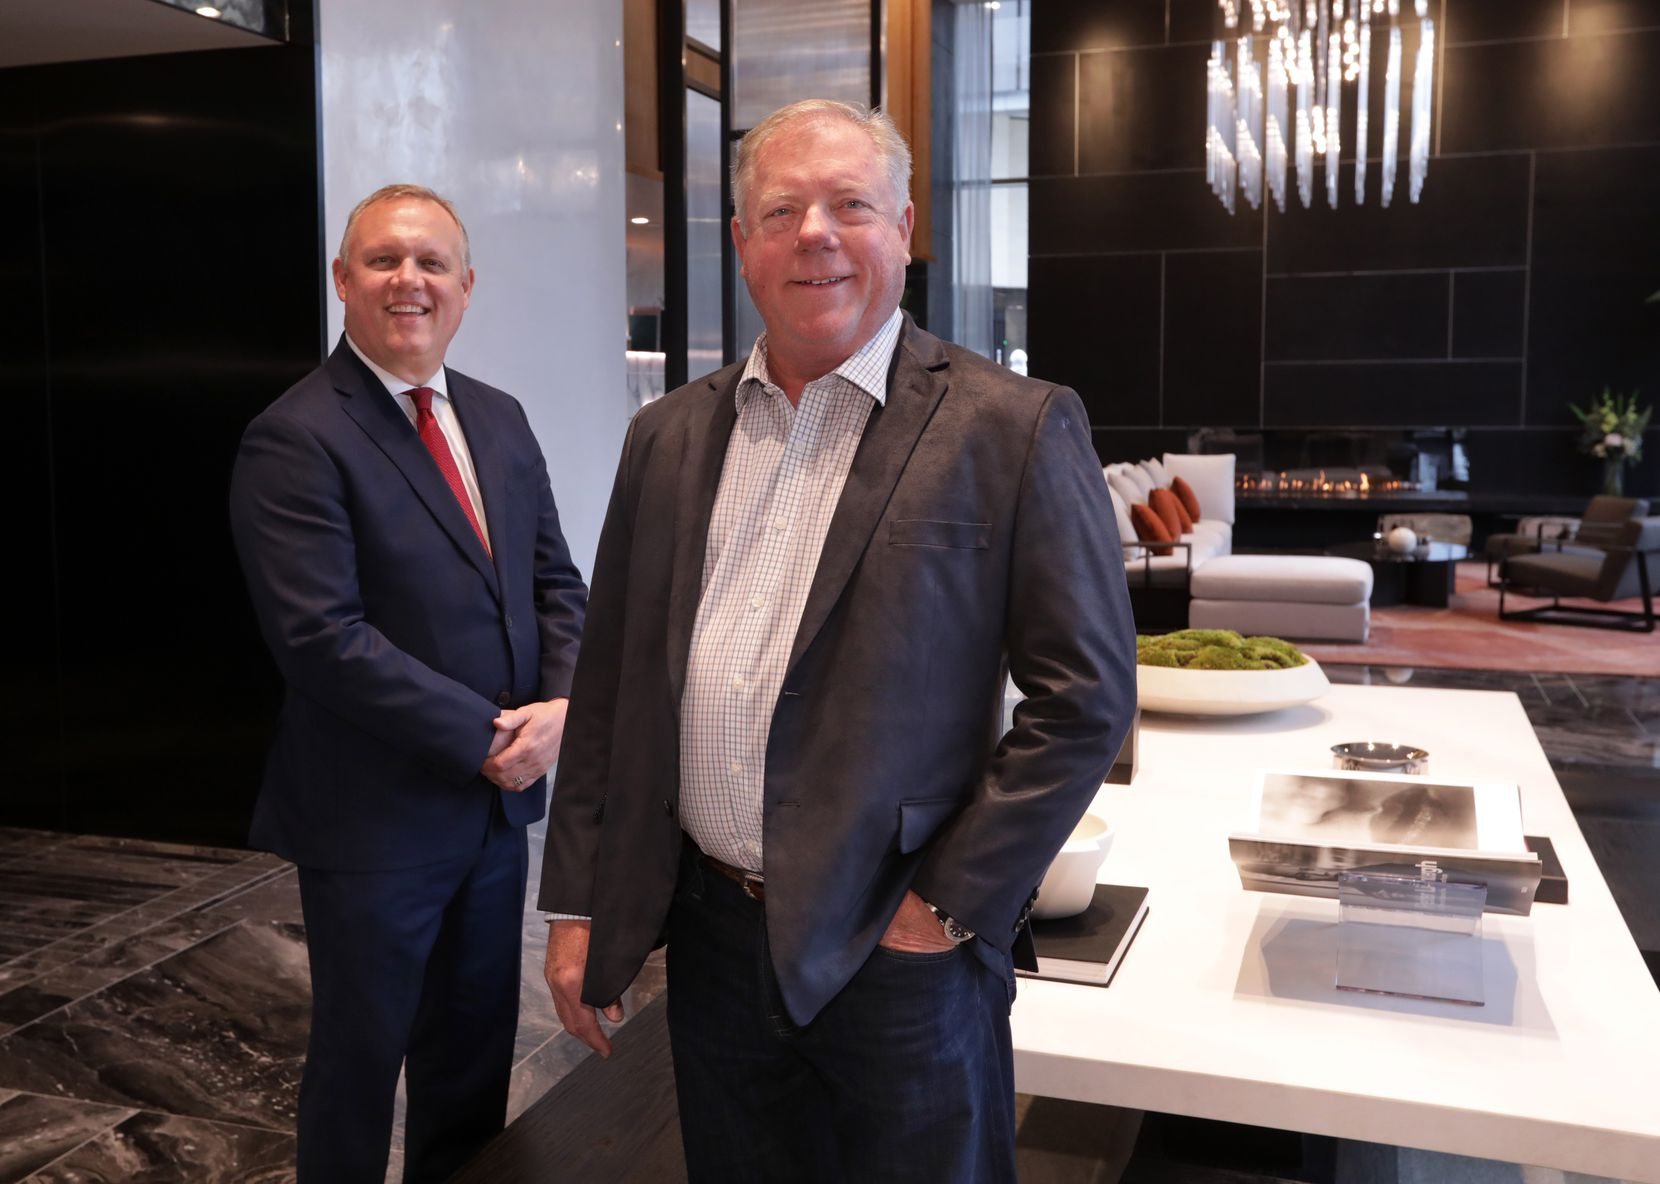 General manager Duane Bates, left, and developer Jim Duggan in the lobby of the  Windrose Tower in Plano. (Jason Janik/Special Contributor)